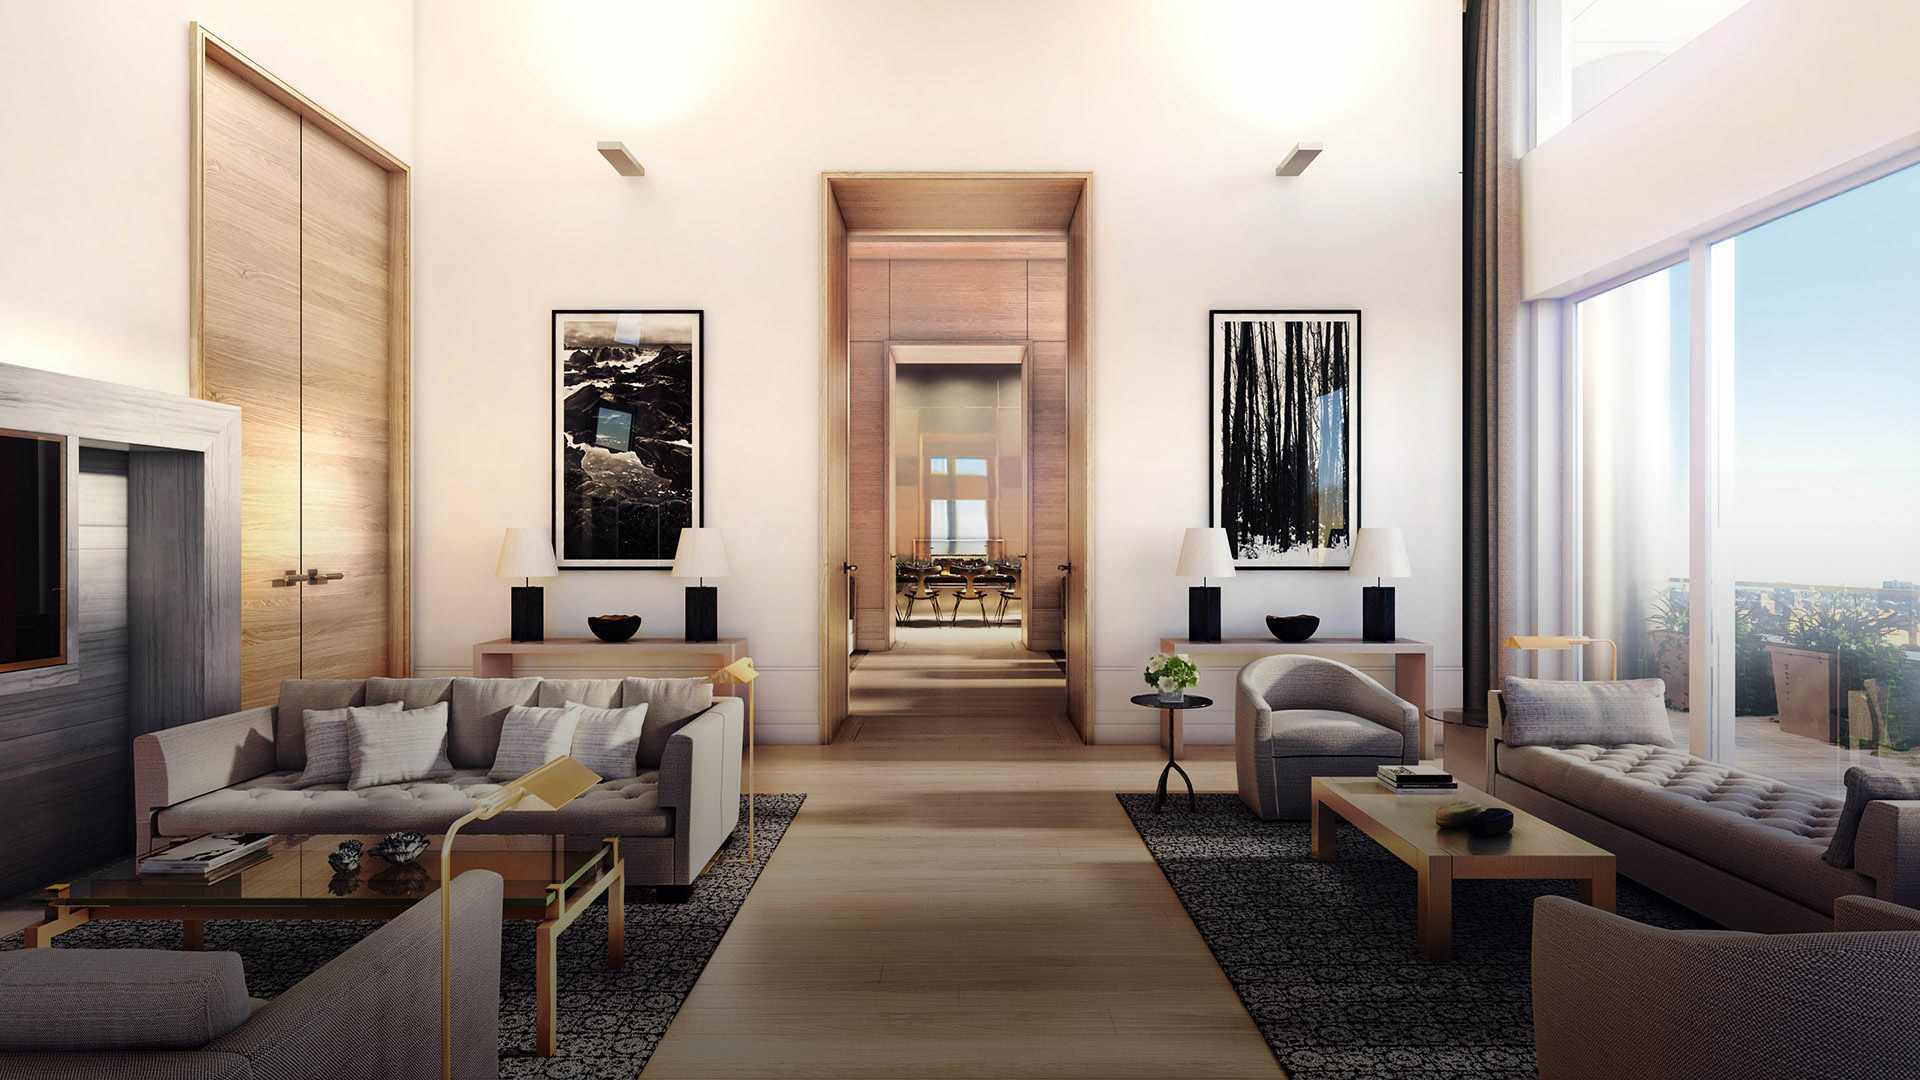 252 East 57th Street, SOM, WOrldwide, Rose Associates, Daniel Romualdez, Billionaire's Row, Central Park skyline 6 (9)